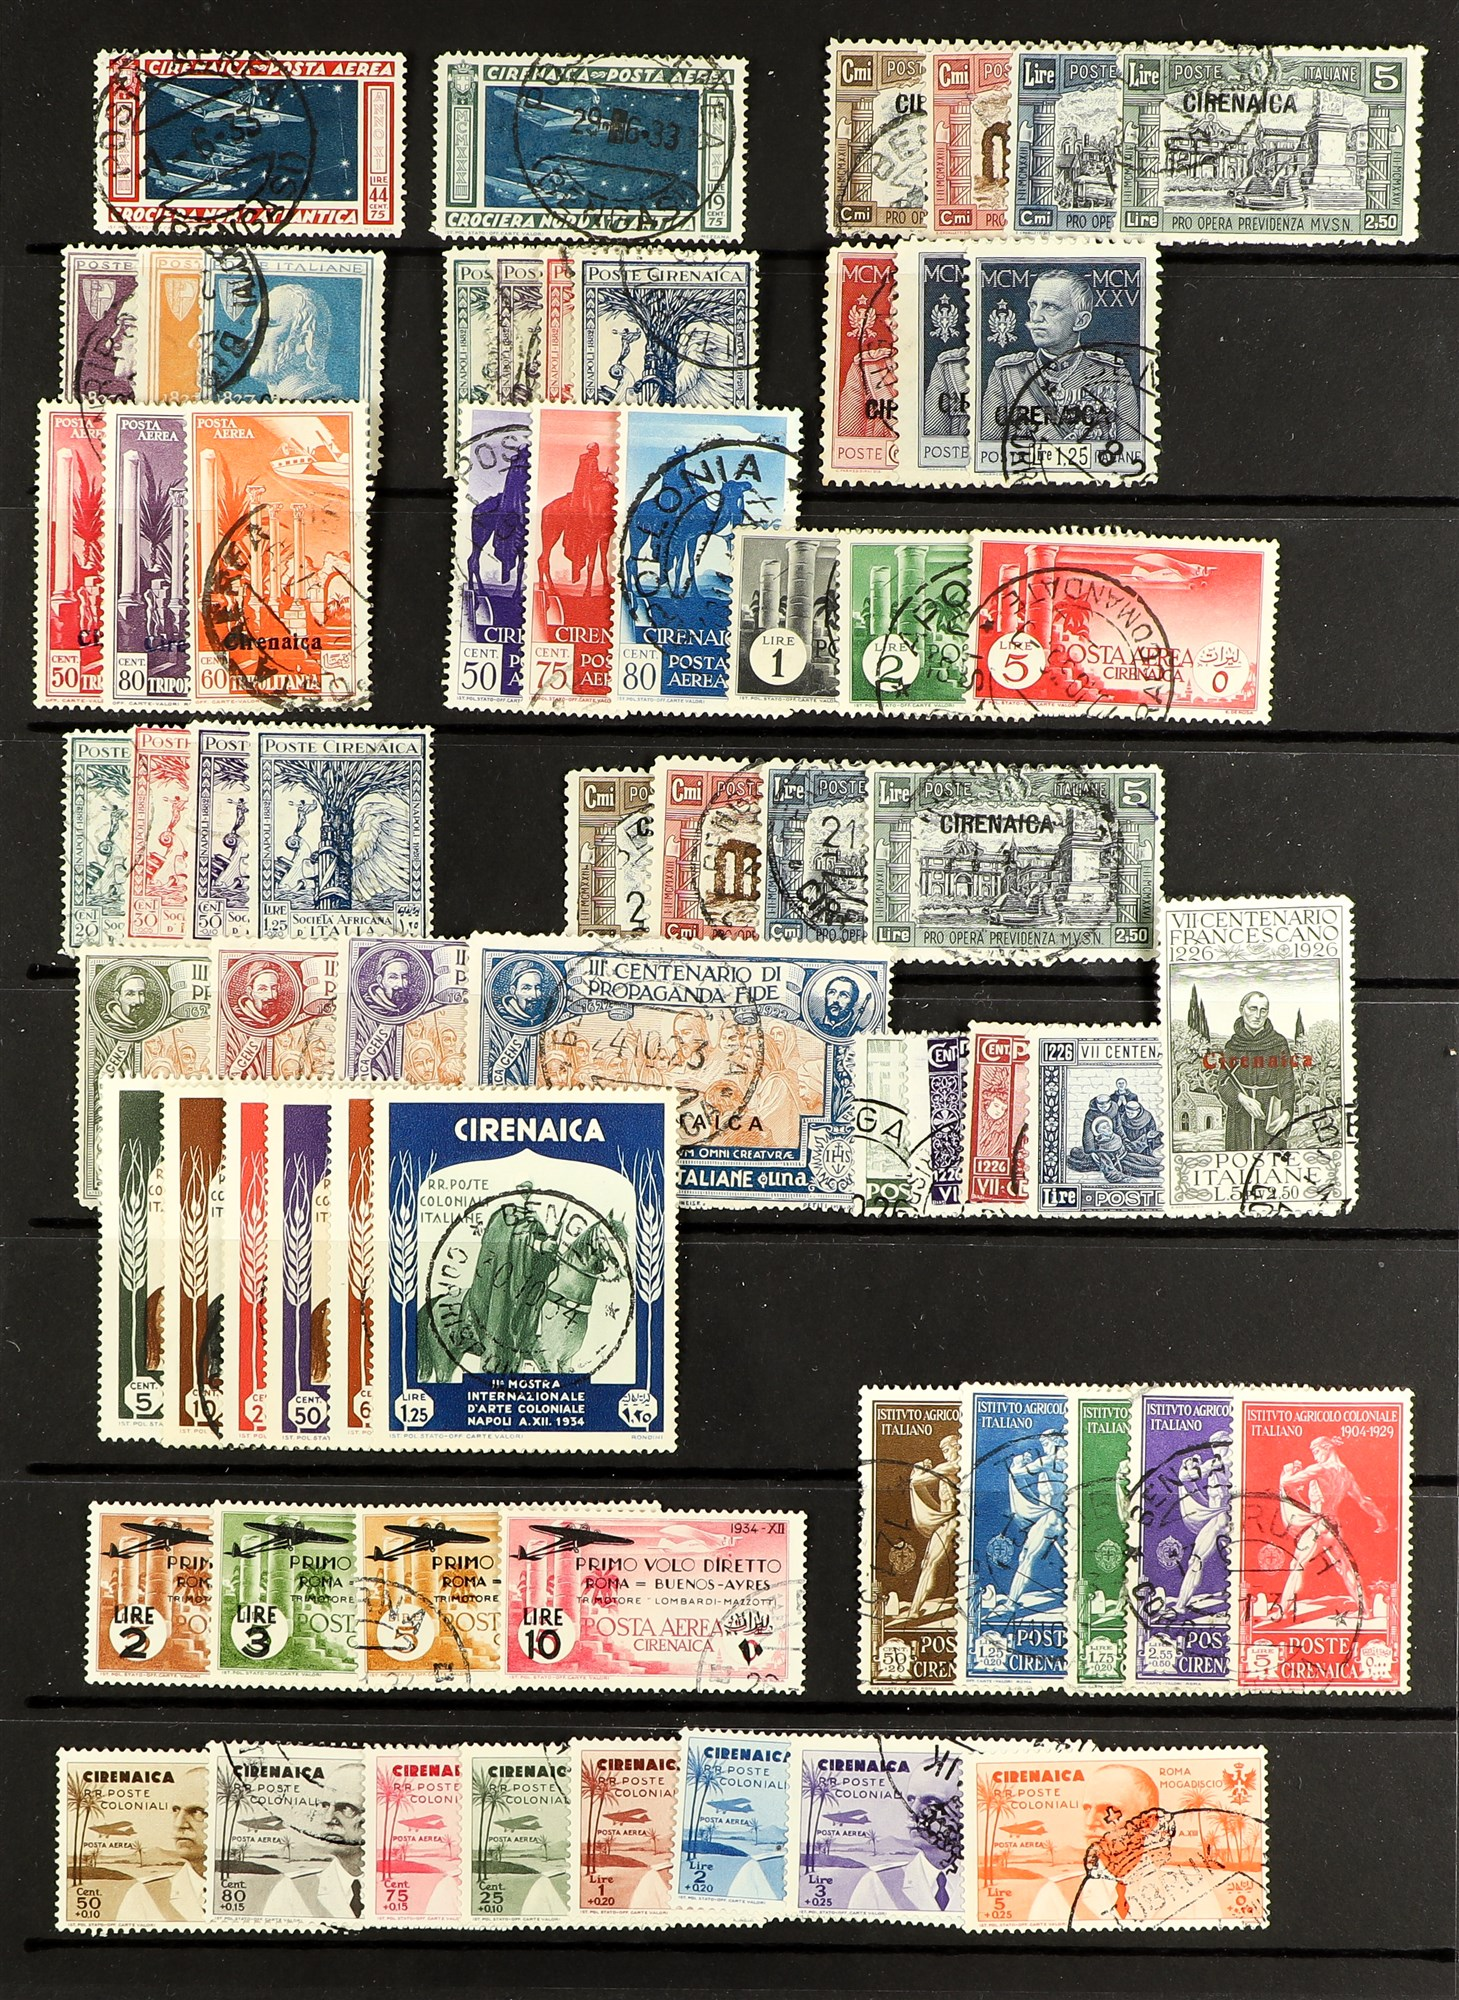 ITALIAN COLONIES CIRENAICA 111923-34 Fine used collection with complete sets and better items